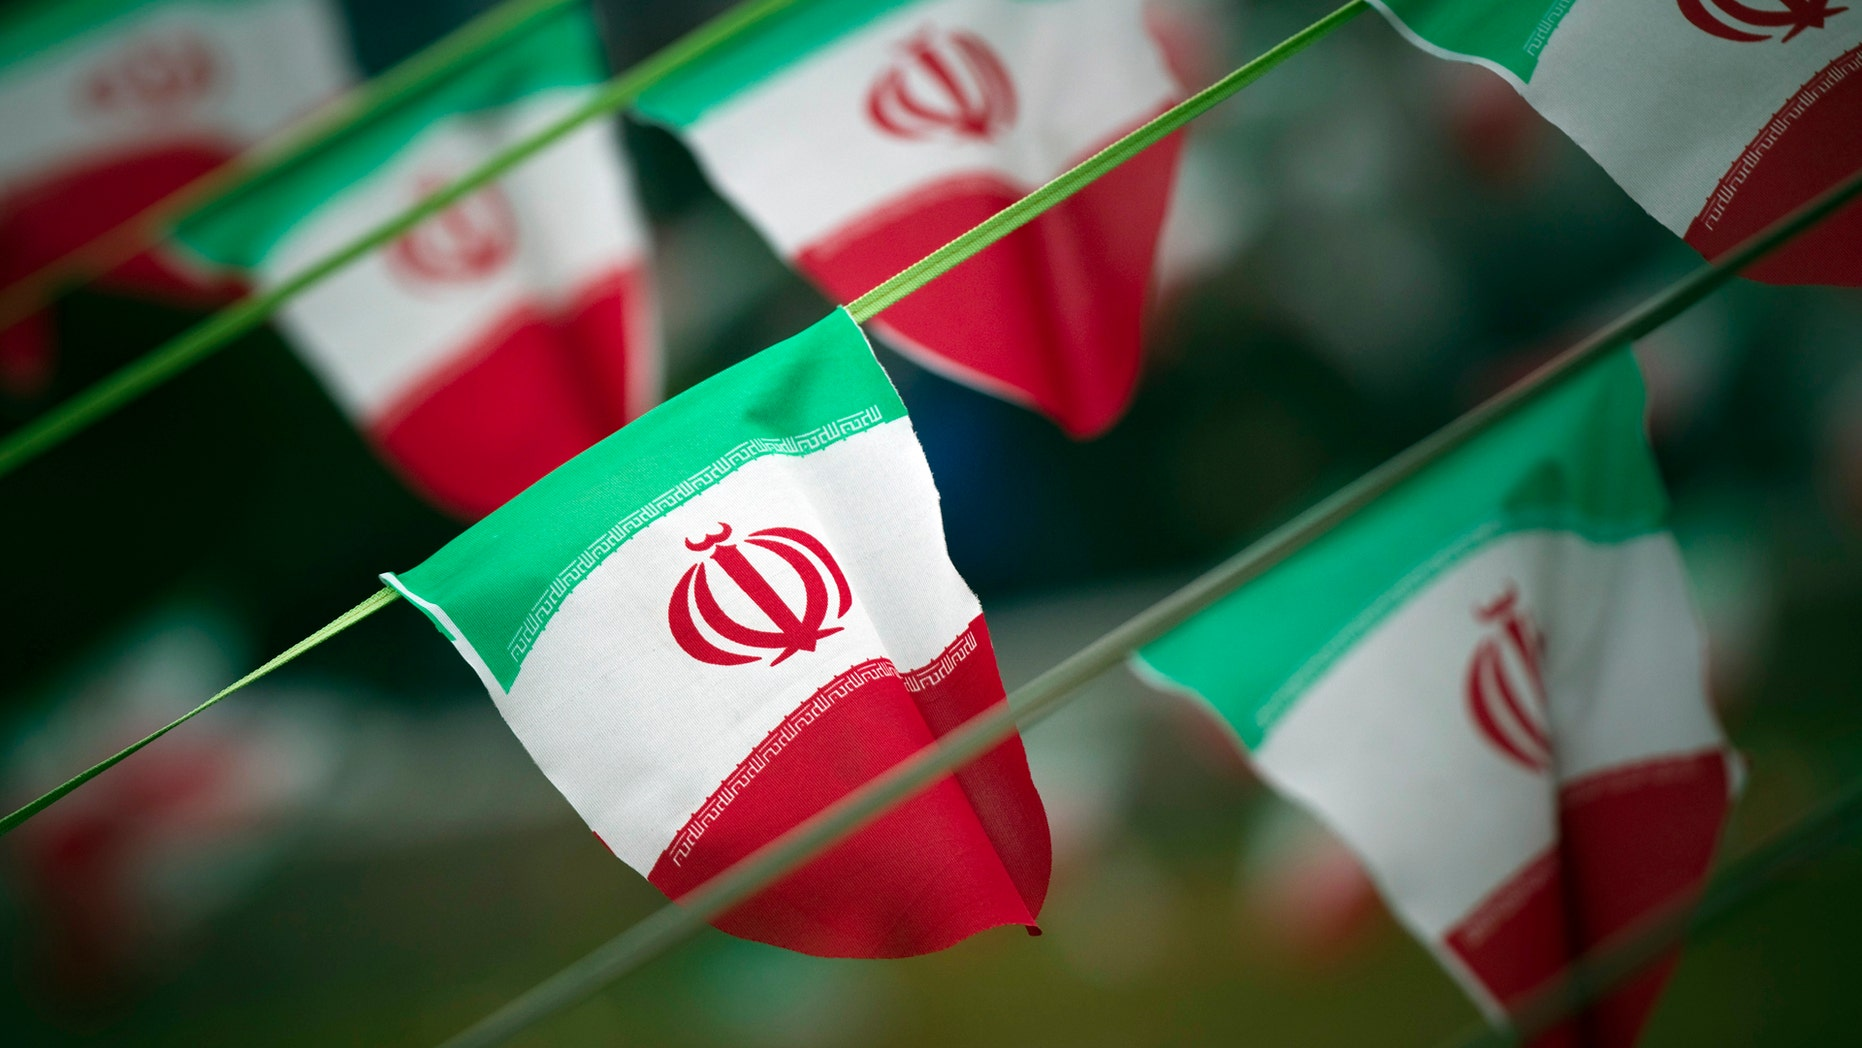 File photo - Iran's national flags are seen on a square in Tehran February 10, 2012, a day before the anniversary of the Islamic Revolution. (REUTERS/Morteza Nikoubazl)